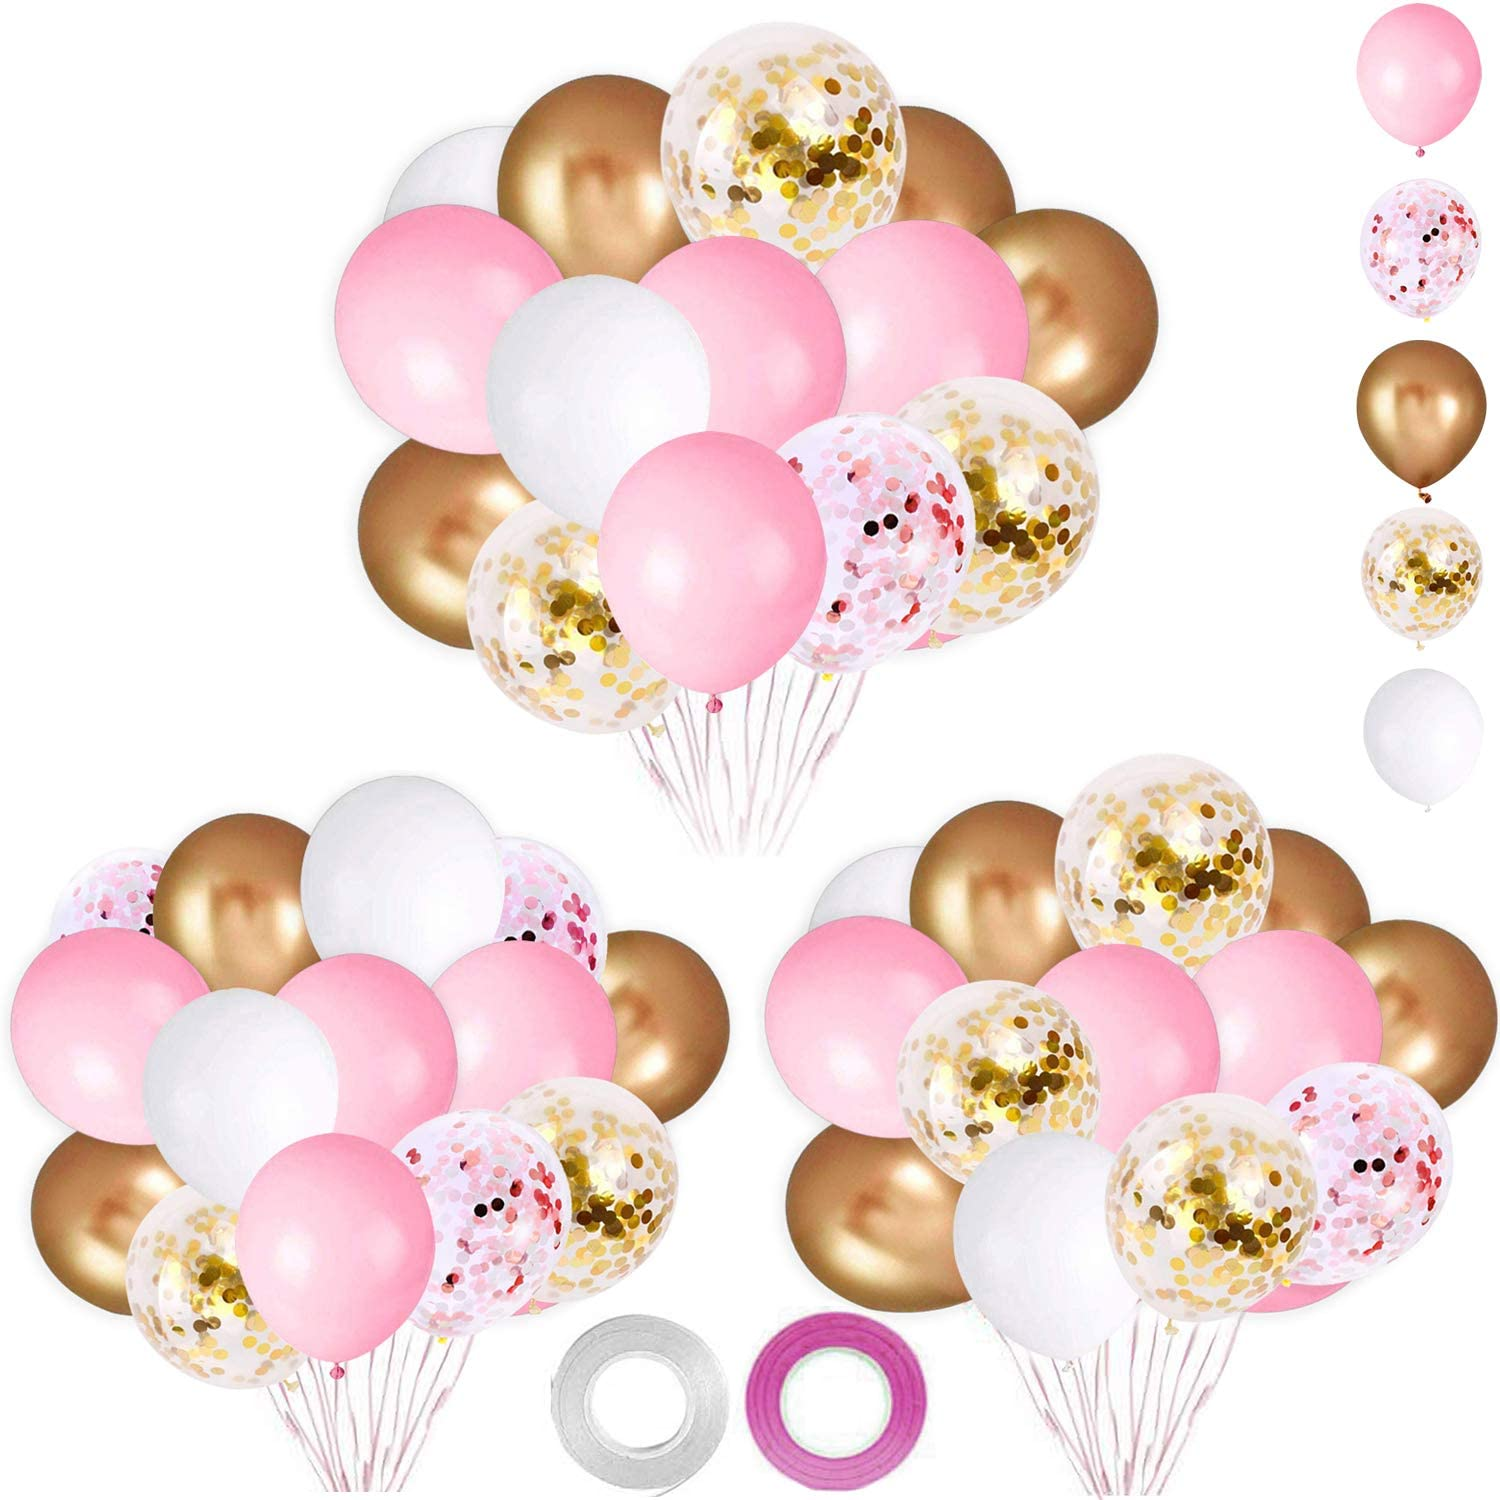 black party metallic balloons decorations 25 pack  30cm hens night baby shower